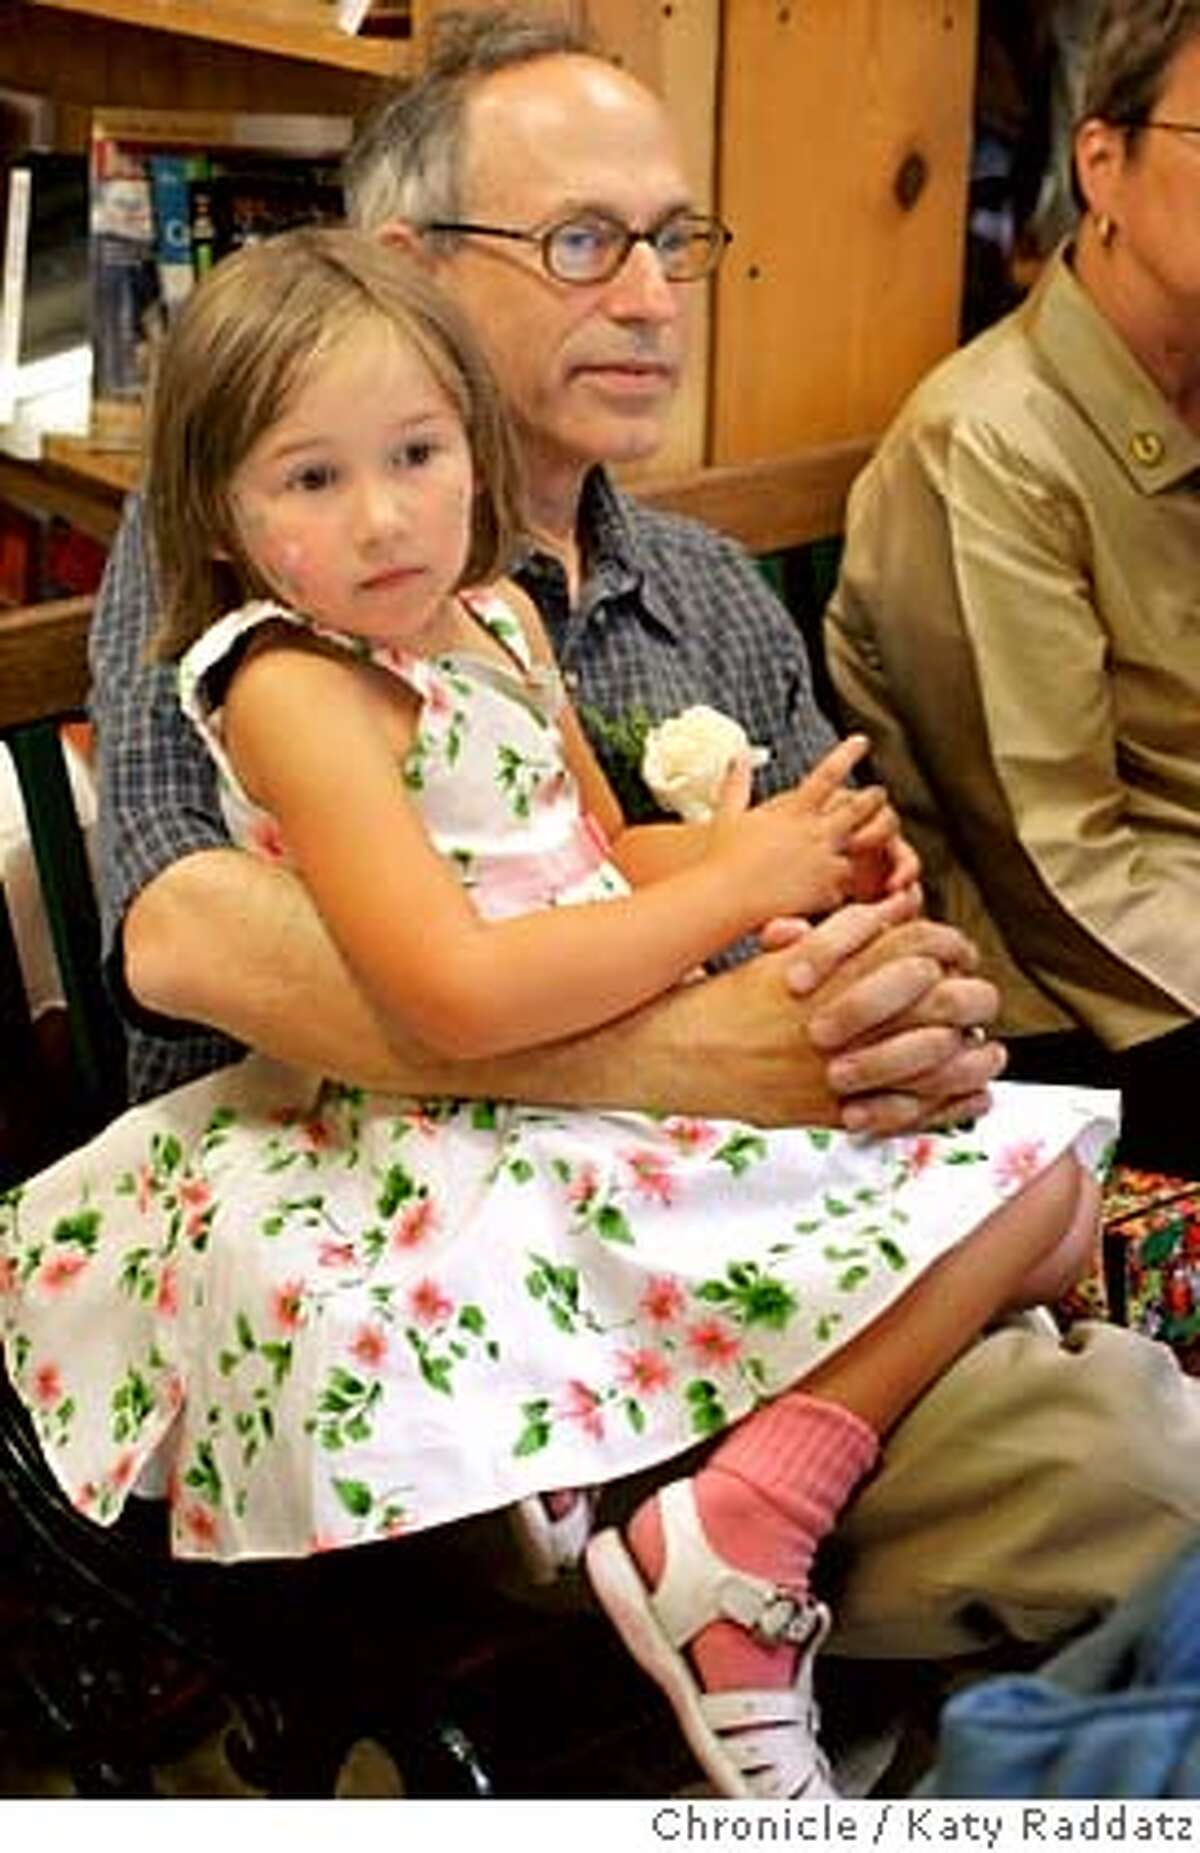 CODYS10_103_RAD.jpg SHOWN: Andy Ross, the current owner of Cody's, holds his 5-yr-old daughter Hayley Ross on his lap while he listens to kind words and stories and farewells from other speakers. Story is about the independent bookstore, Cody's Books, closing its flagship store on Telegraph Ave. in Berkeley. Photo taken on 7/9/06, in Berkeley, CA. (Katy Raddatz/The S.F.Chronicle) **Andy Ross, Hayley Ross Mandatory credit for photographer and the San Francisco Chronicle/ -Mags out